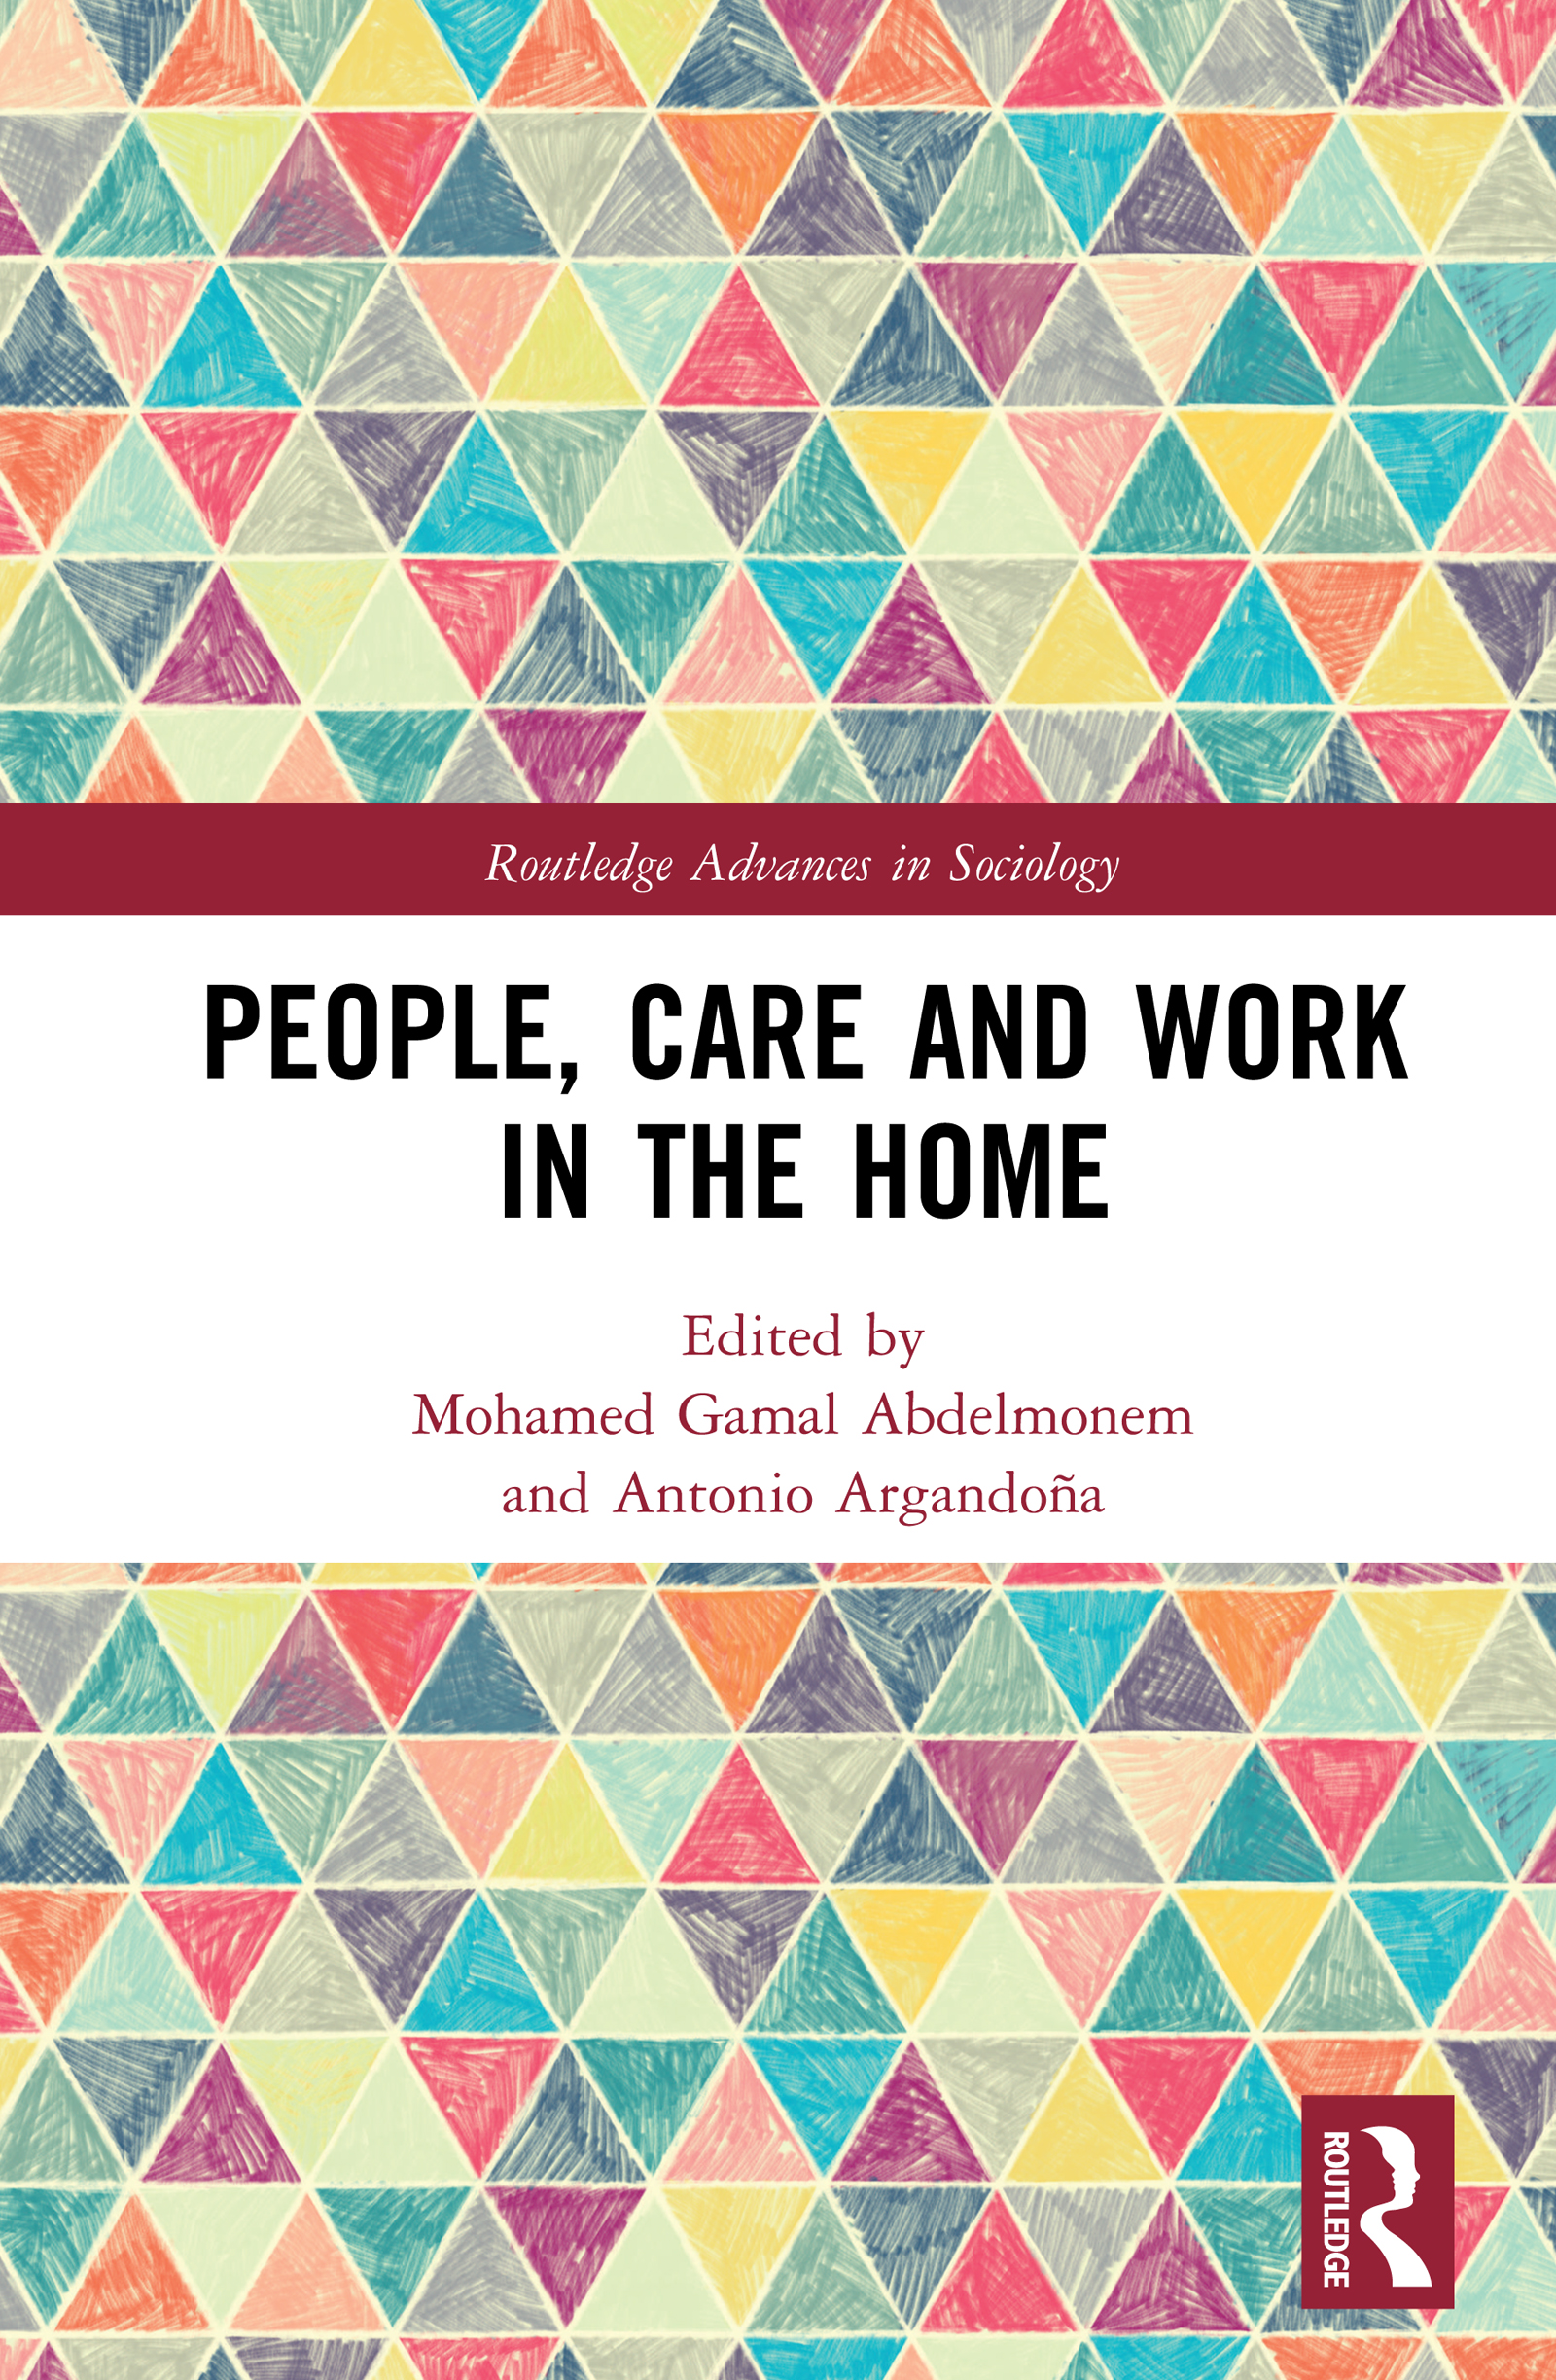 People, Care and Work in the Home